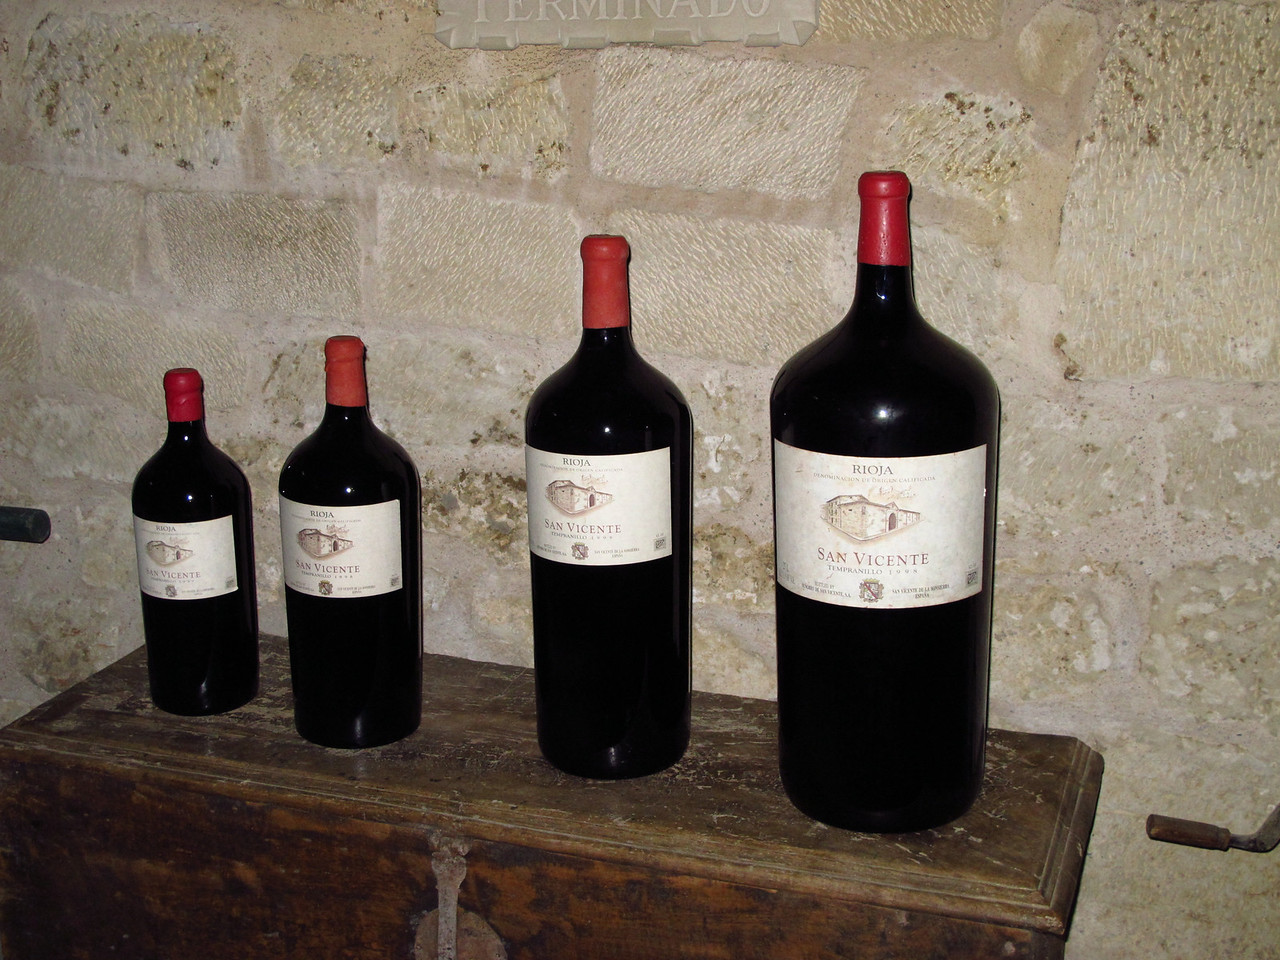 Here's their San Vincente wine in many different sizes from 1.5 litres to 6 litre bottles.